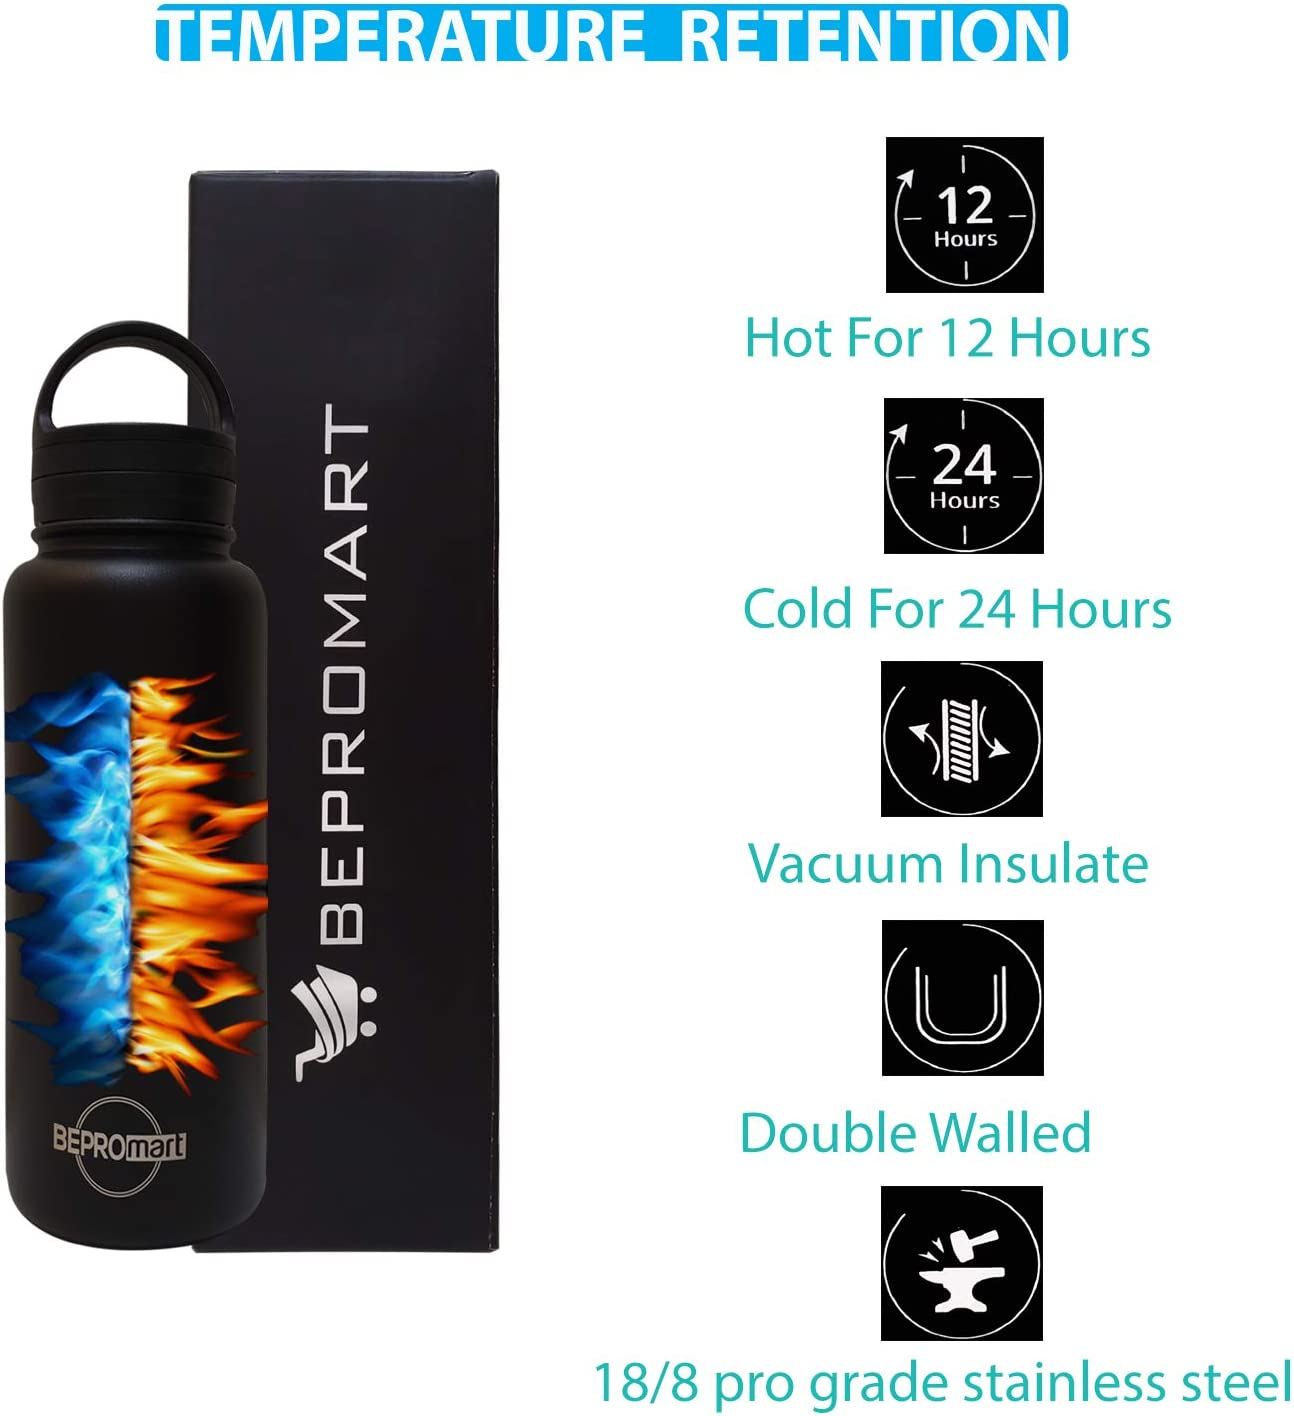 Sweatproof Sport Bottle Keeps Hot and Cold. Stainless Steel Water Bottle//Tumbler BEPROMART 32oz Water Bottle with 2 Leakproof Lids Wide Mouth Double Wall Vacuum Insulated